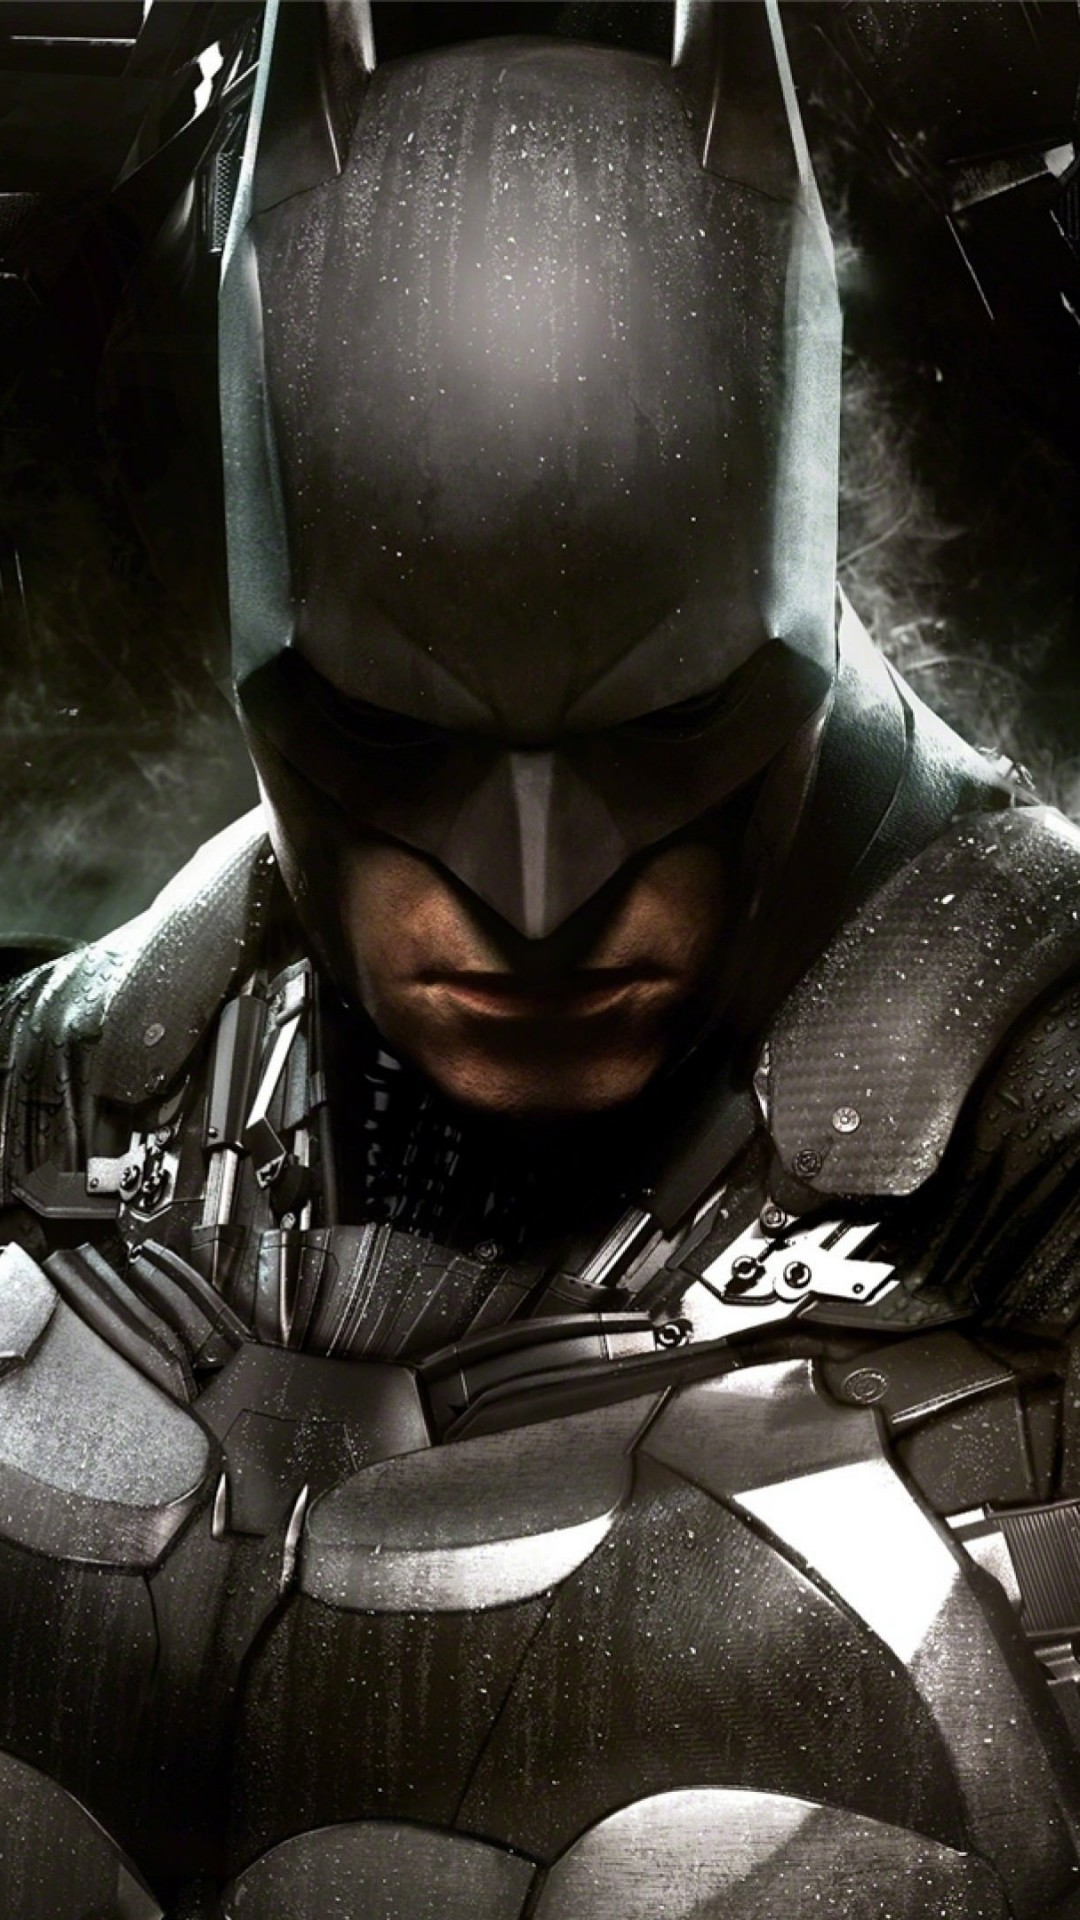 The Batman : Arkham Knight Wallpaper for HTC One